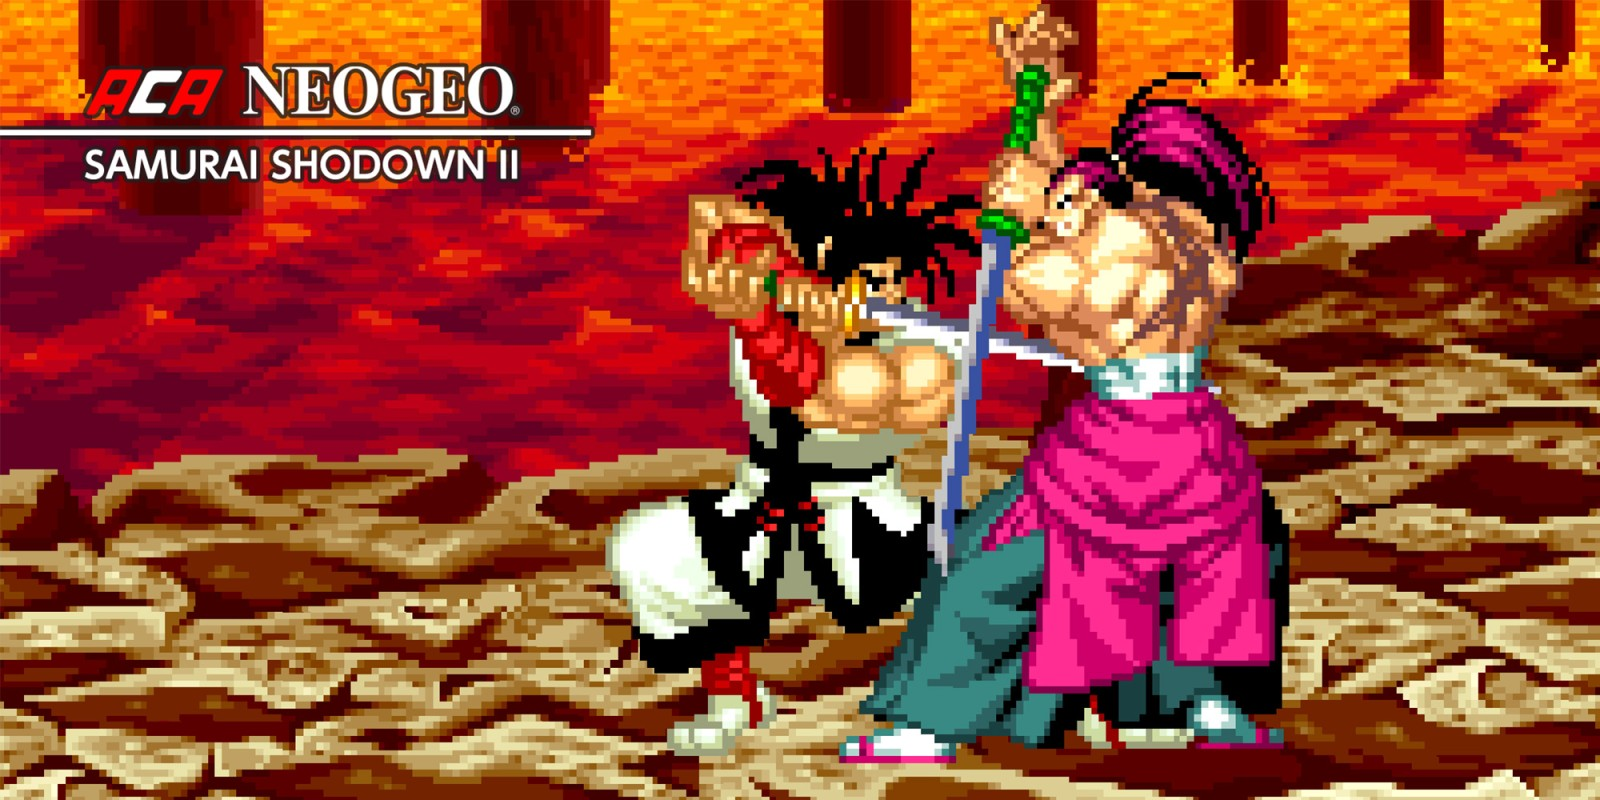 ACA NEOGEO SAMURAI SHODOWN II | Nintendo Switch download software | Games | Nintendo